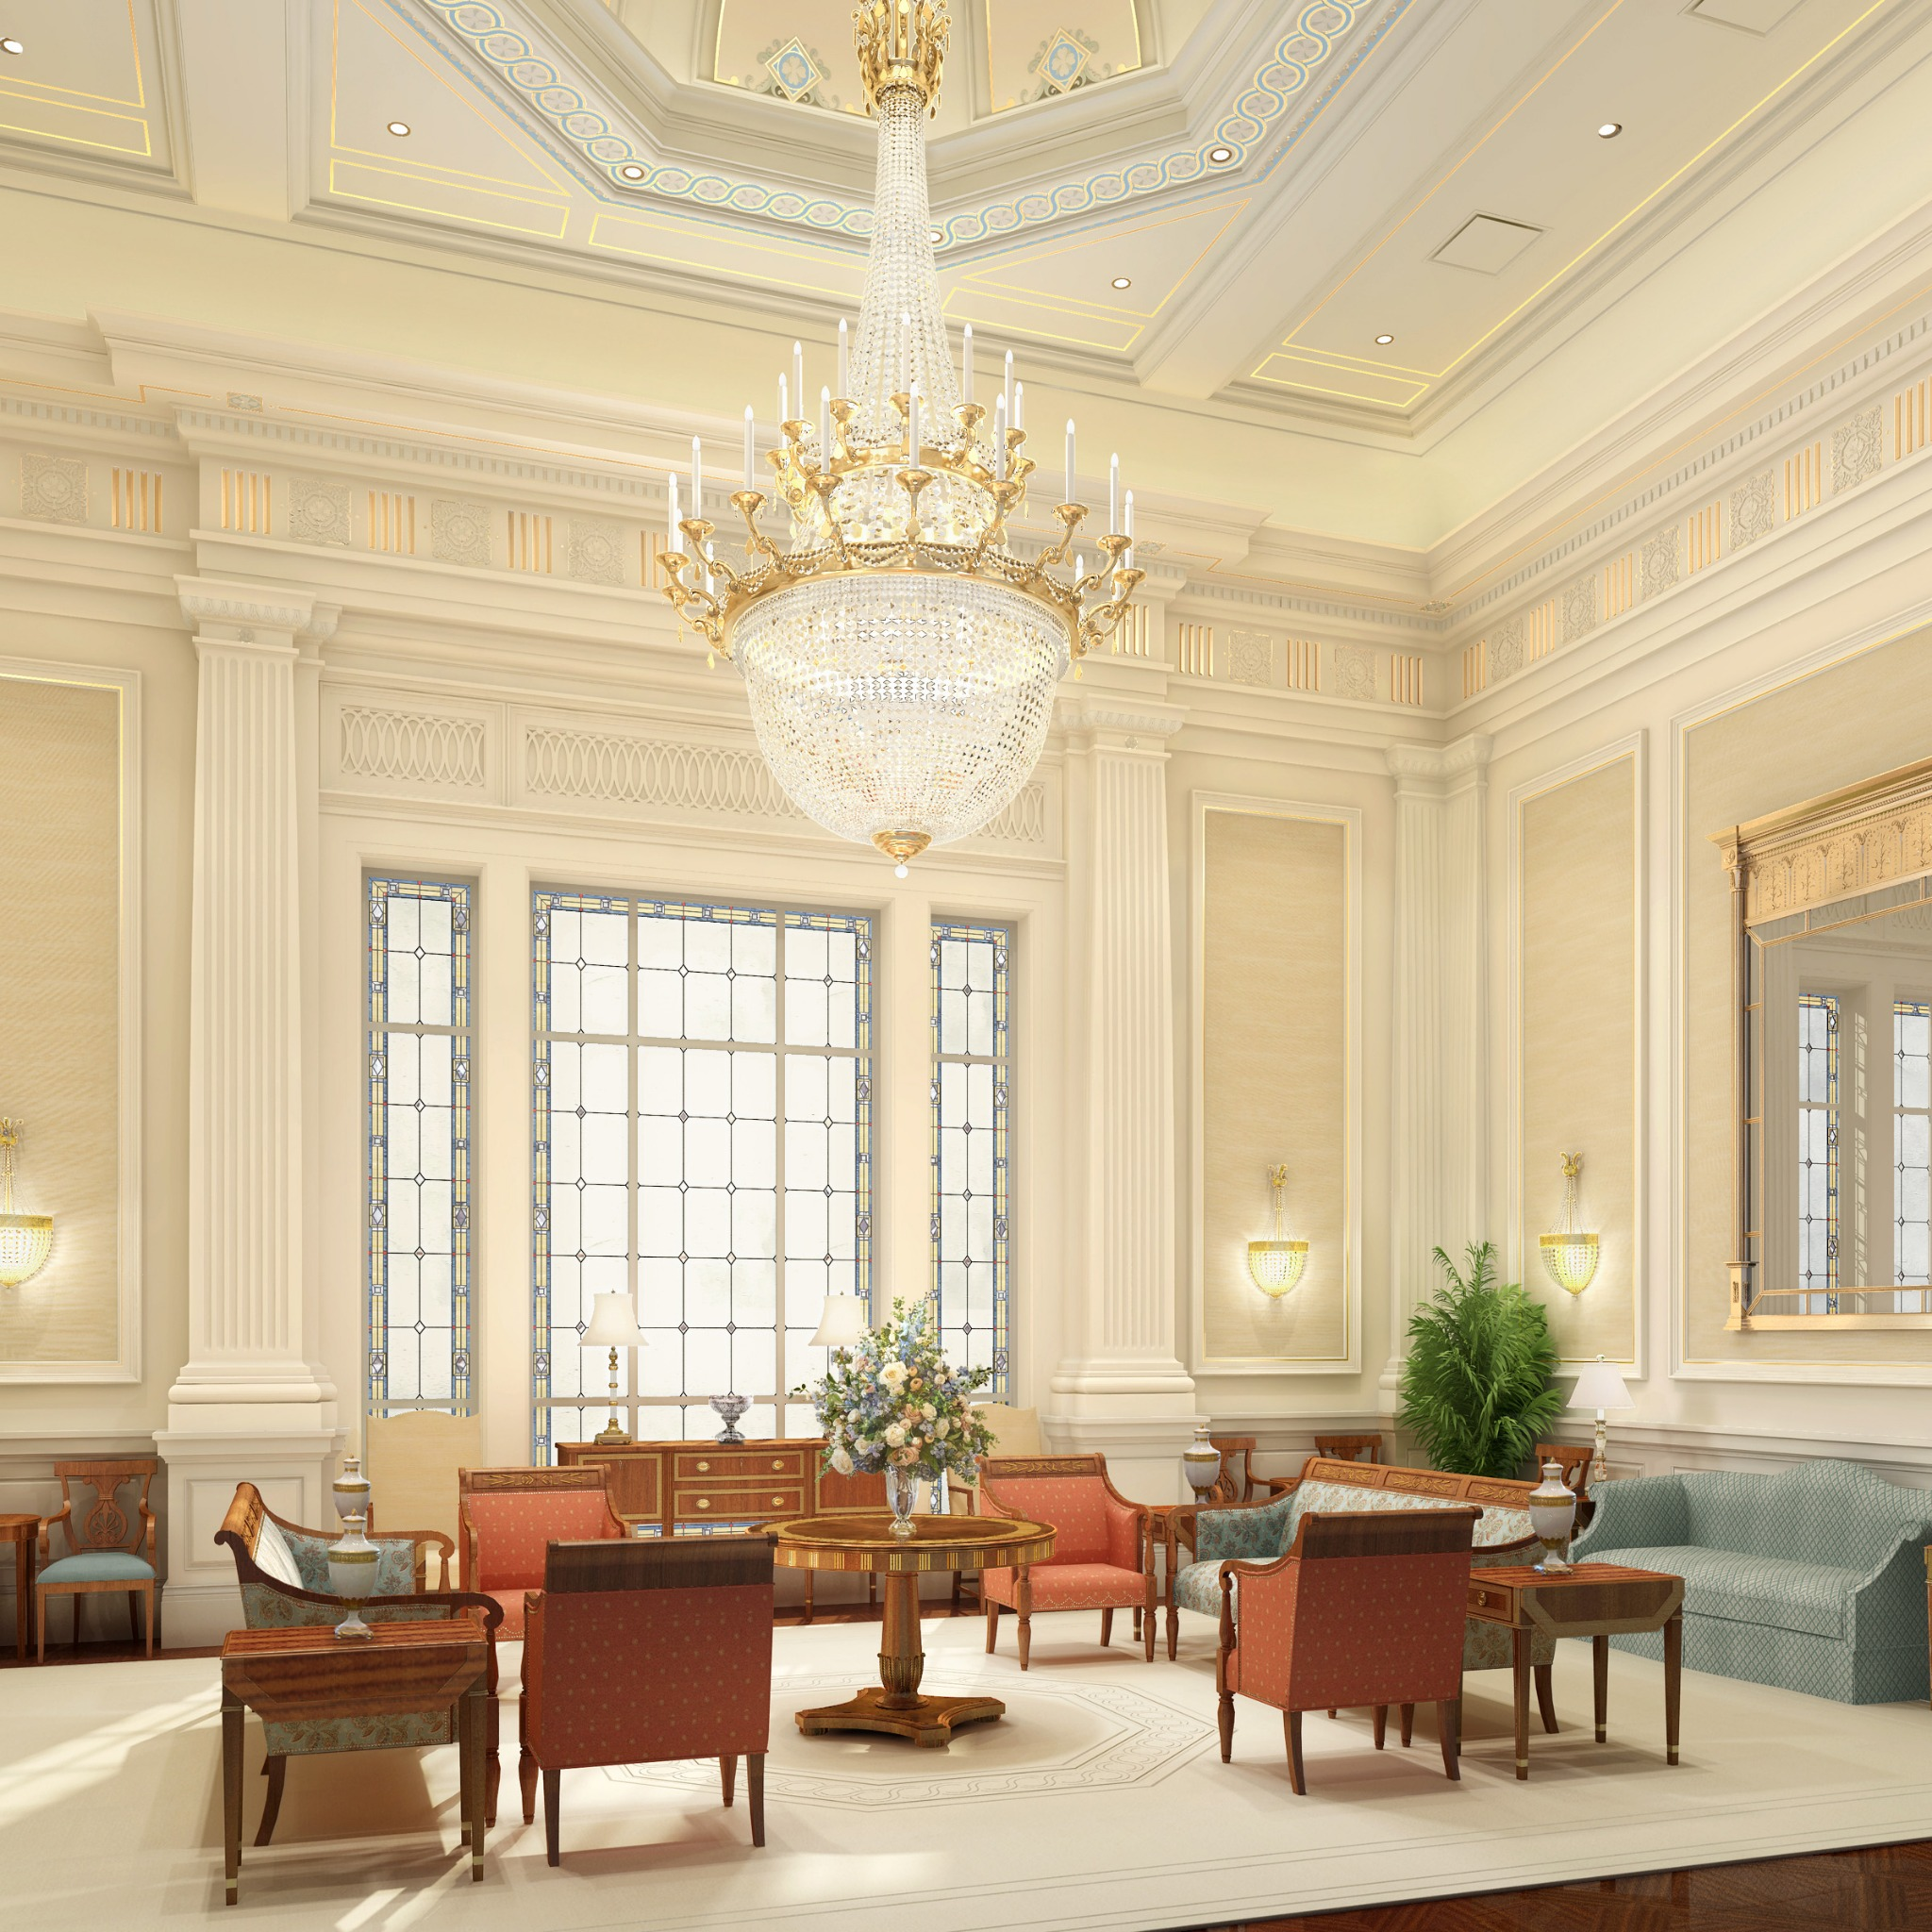 Rendering of the celestial room in the Richmond Virginia Temple